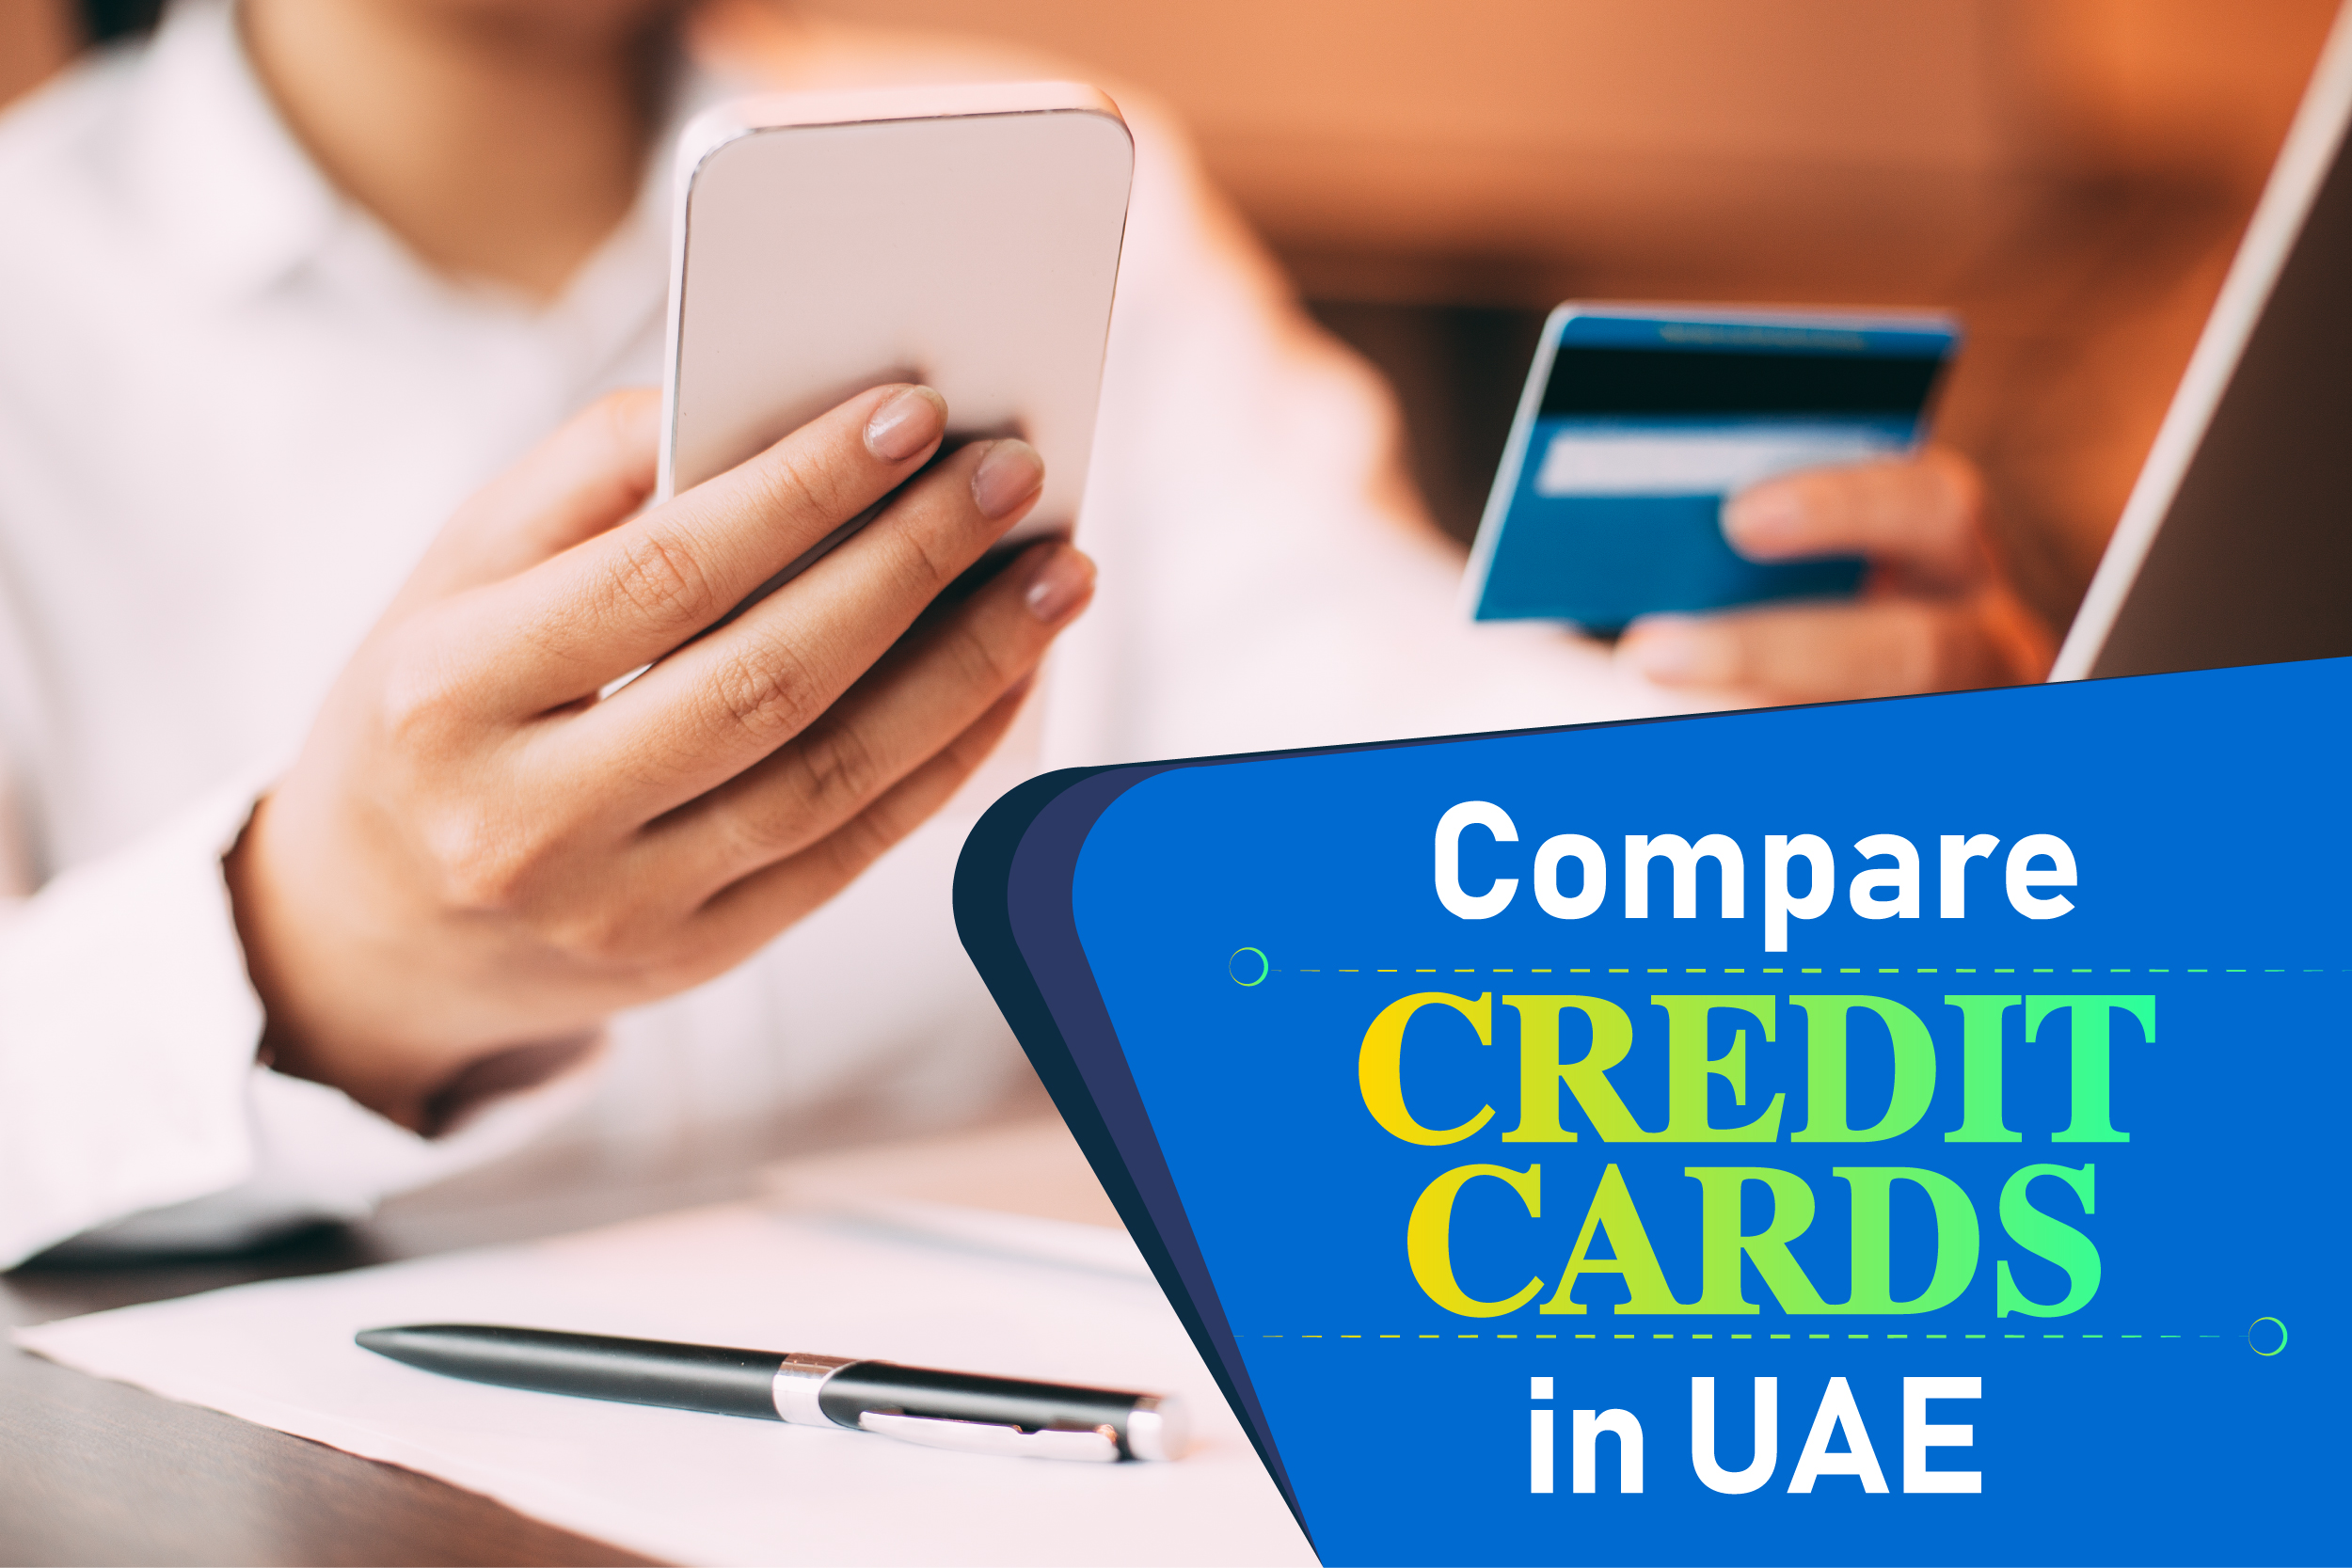 UAE Credit Cards